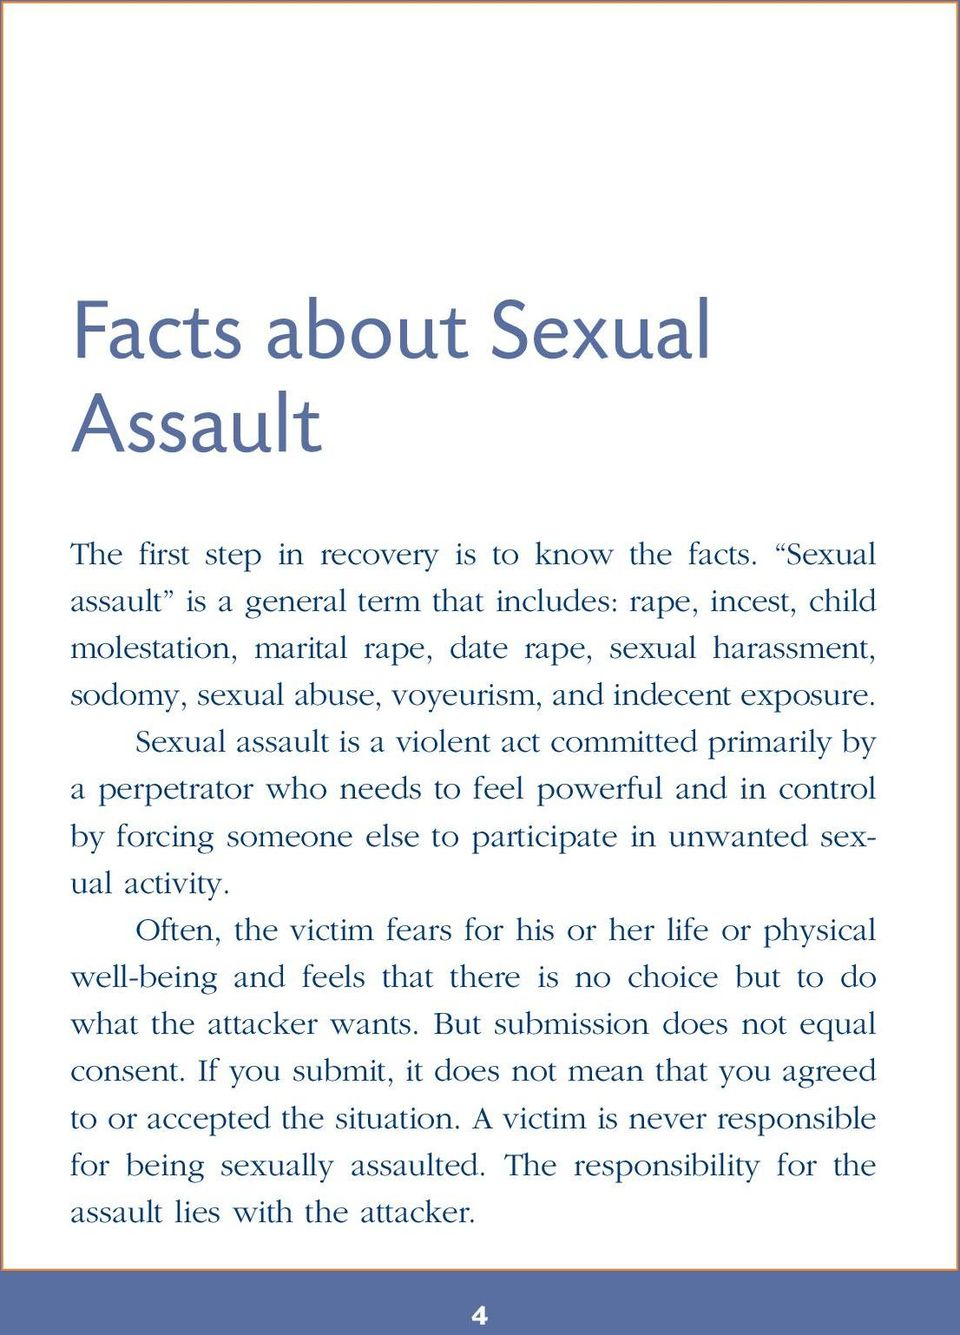 Sexual assault is a violent act committed primarily by a perpetrator who needs to feel powerful and in control by forcing someone else to participate in unwanted sexual activity.